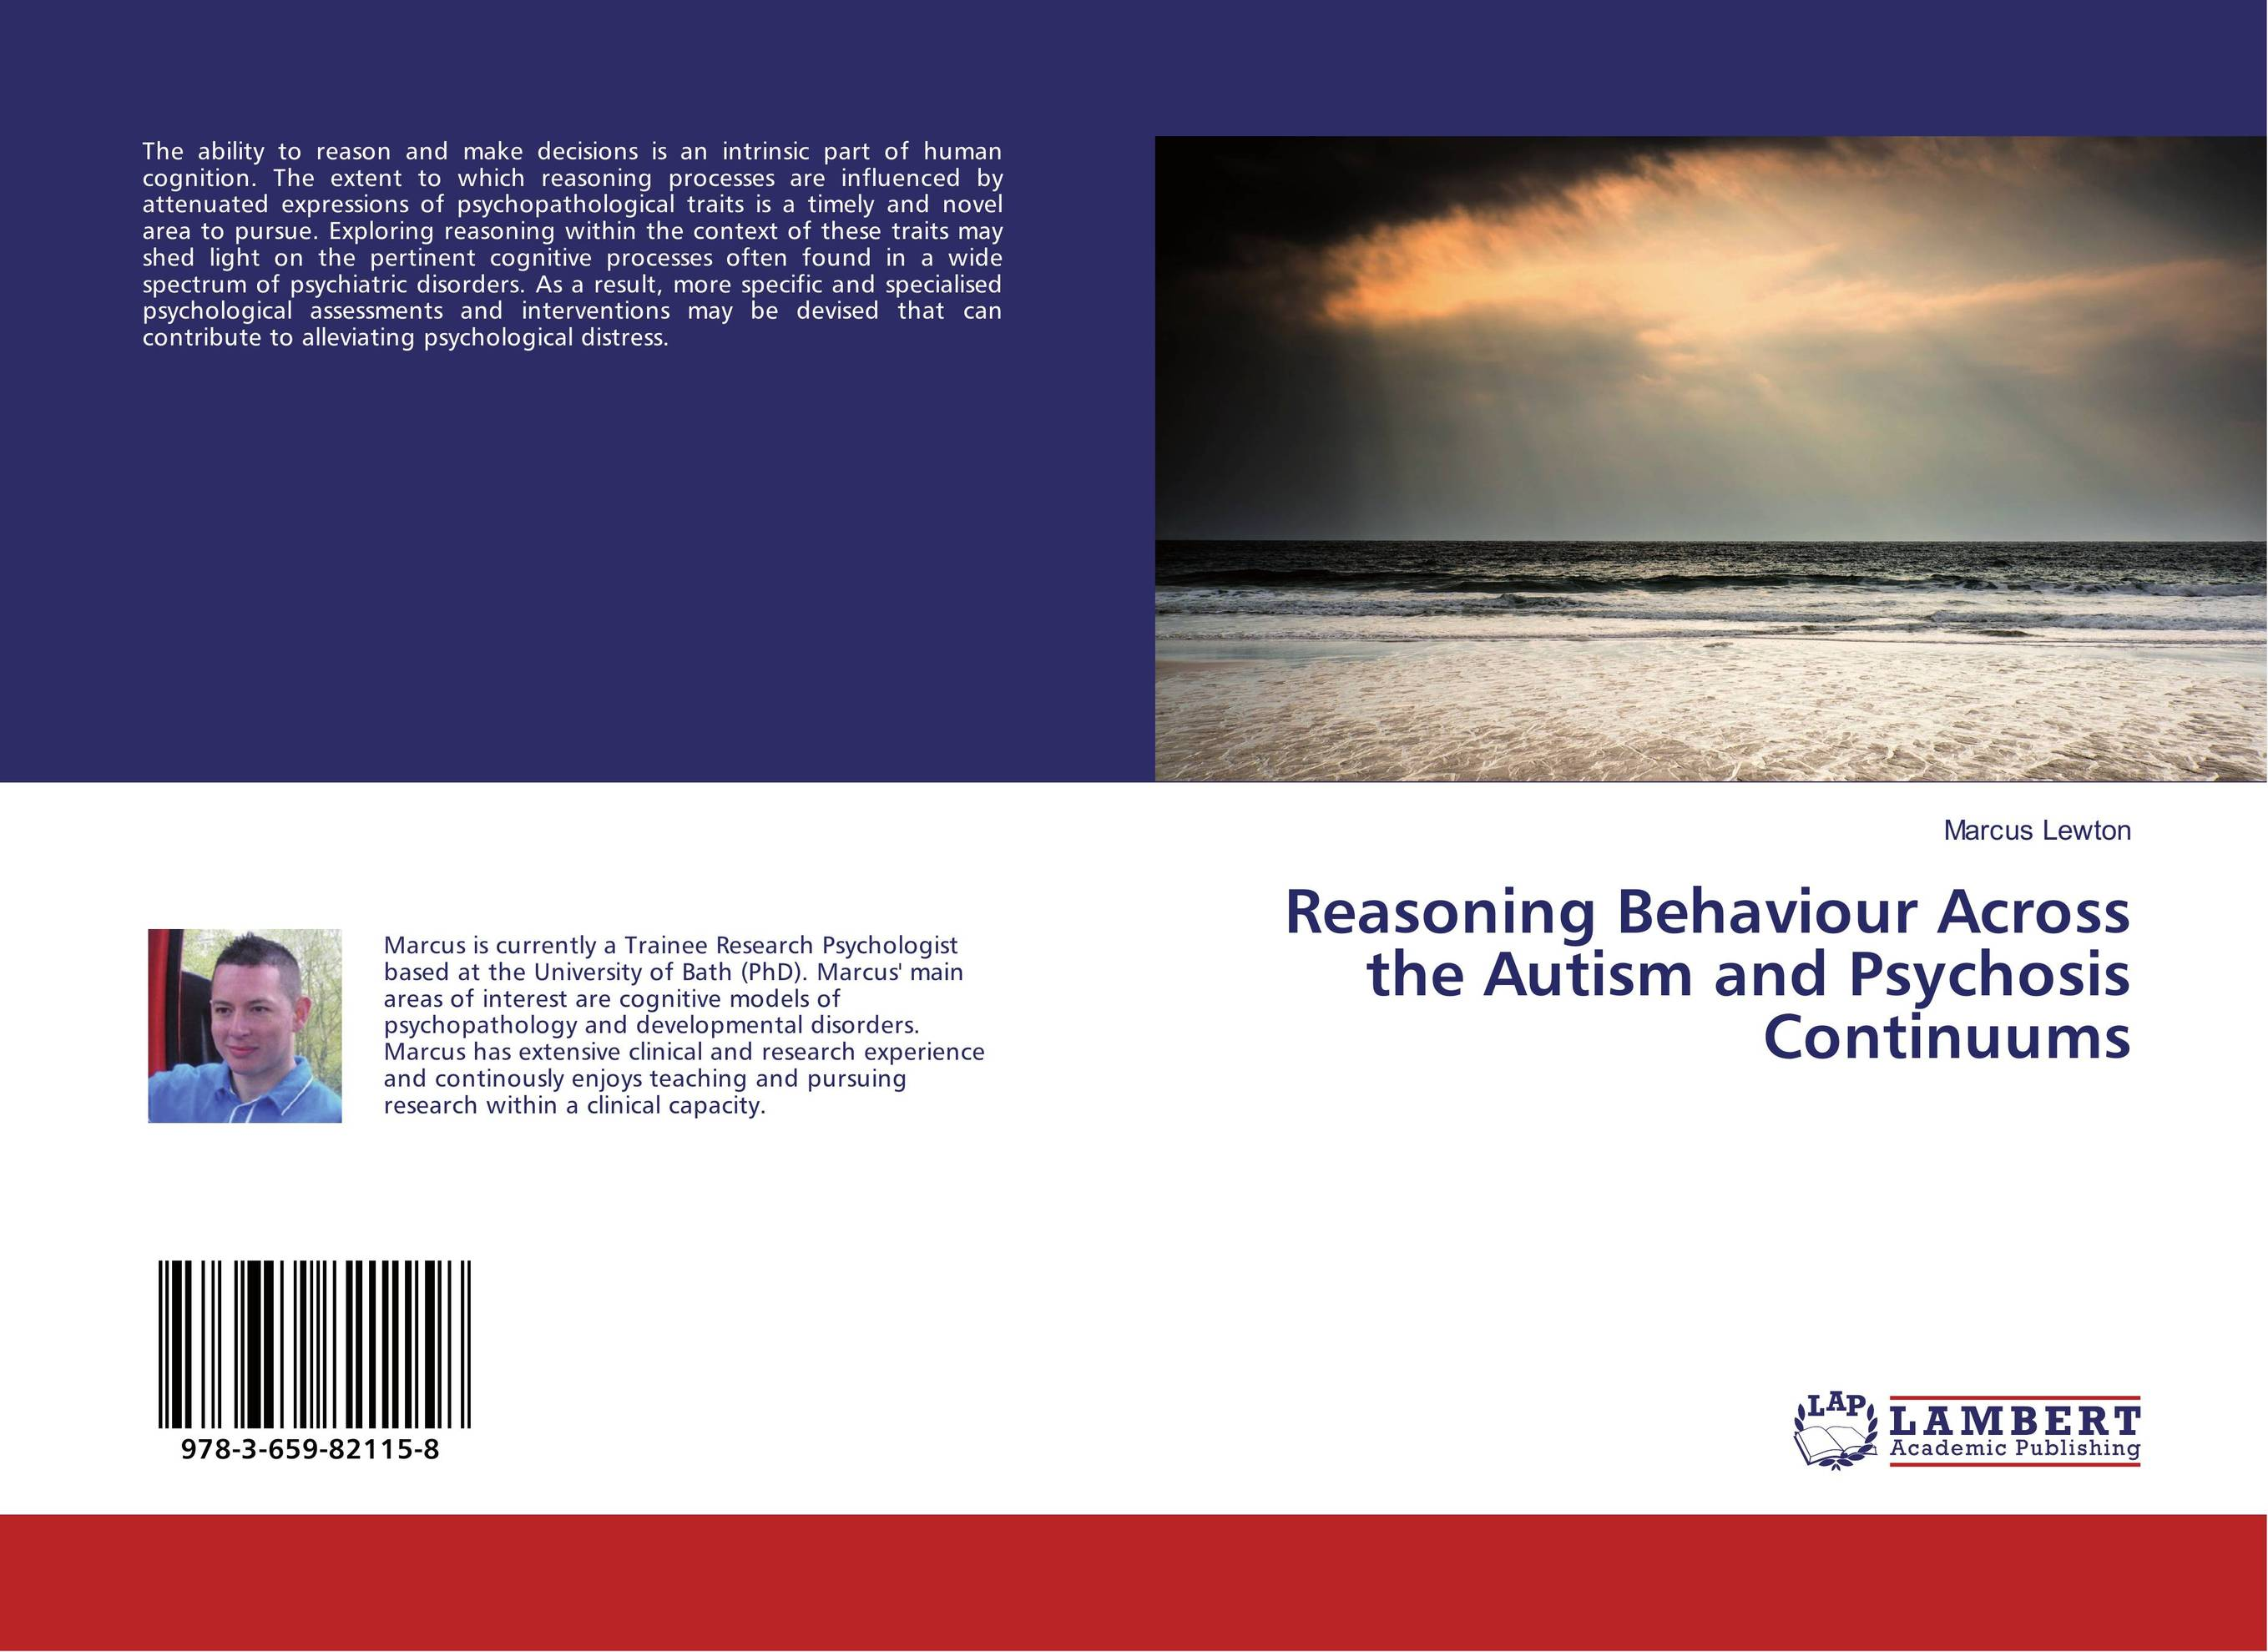 Reasoning Behaviour Across the Autism and Psychosis Continuums identification processes of articulation and phonemic disorders